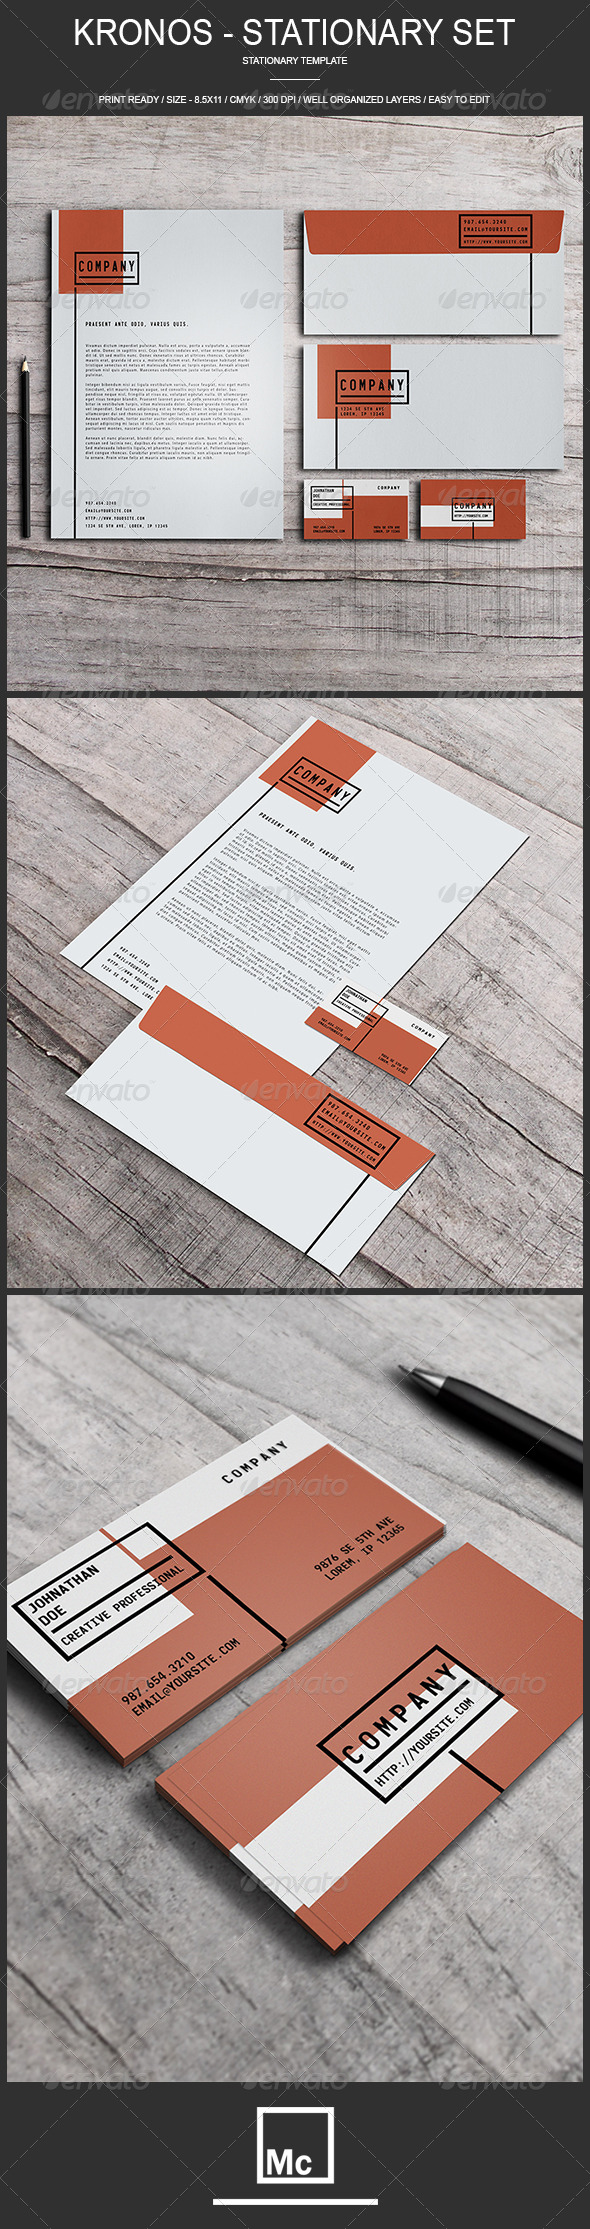 GraphicRiver Kronos Stationary Set 6888210